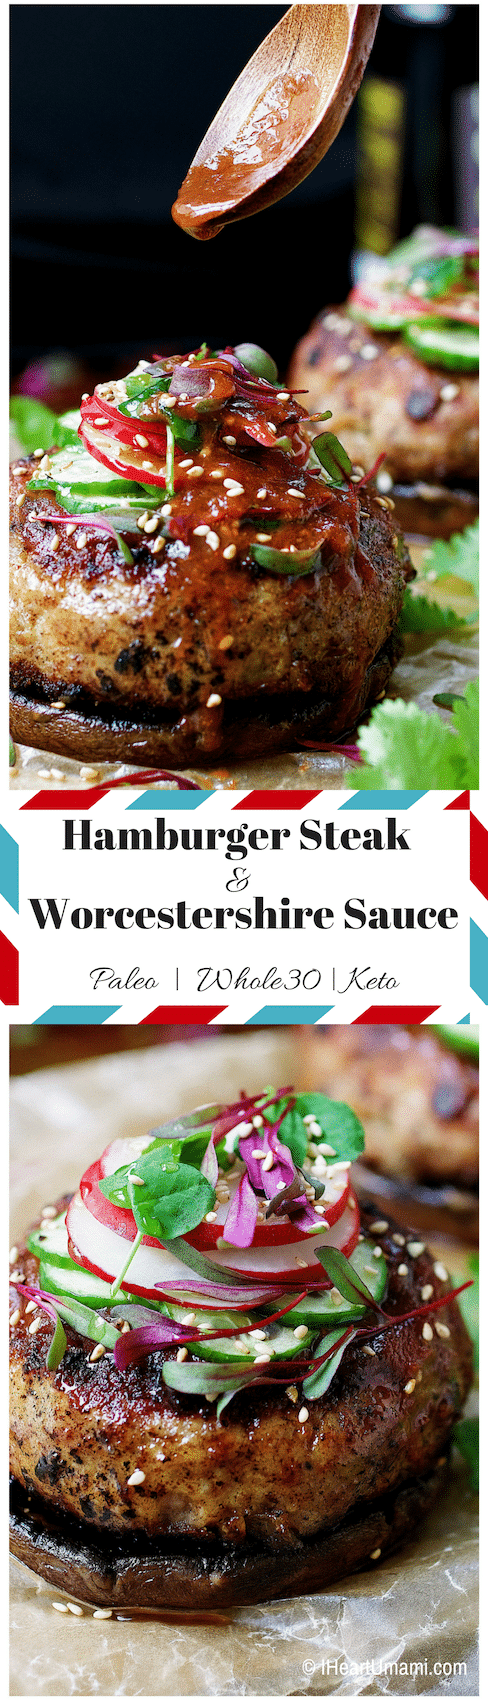 Easy pork chop recipes with worcestershire sauce